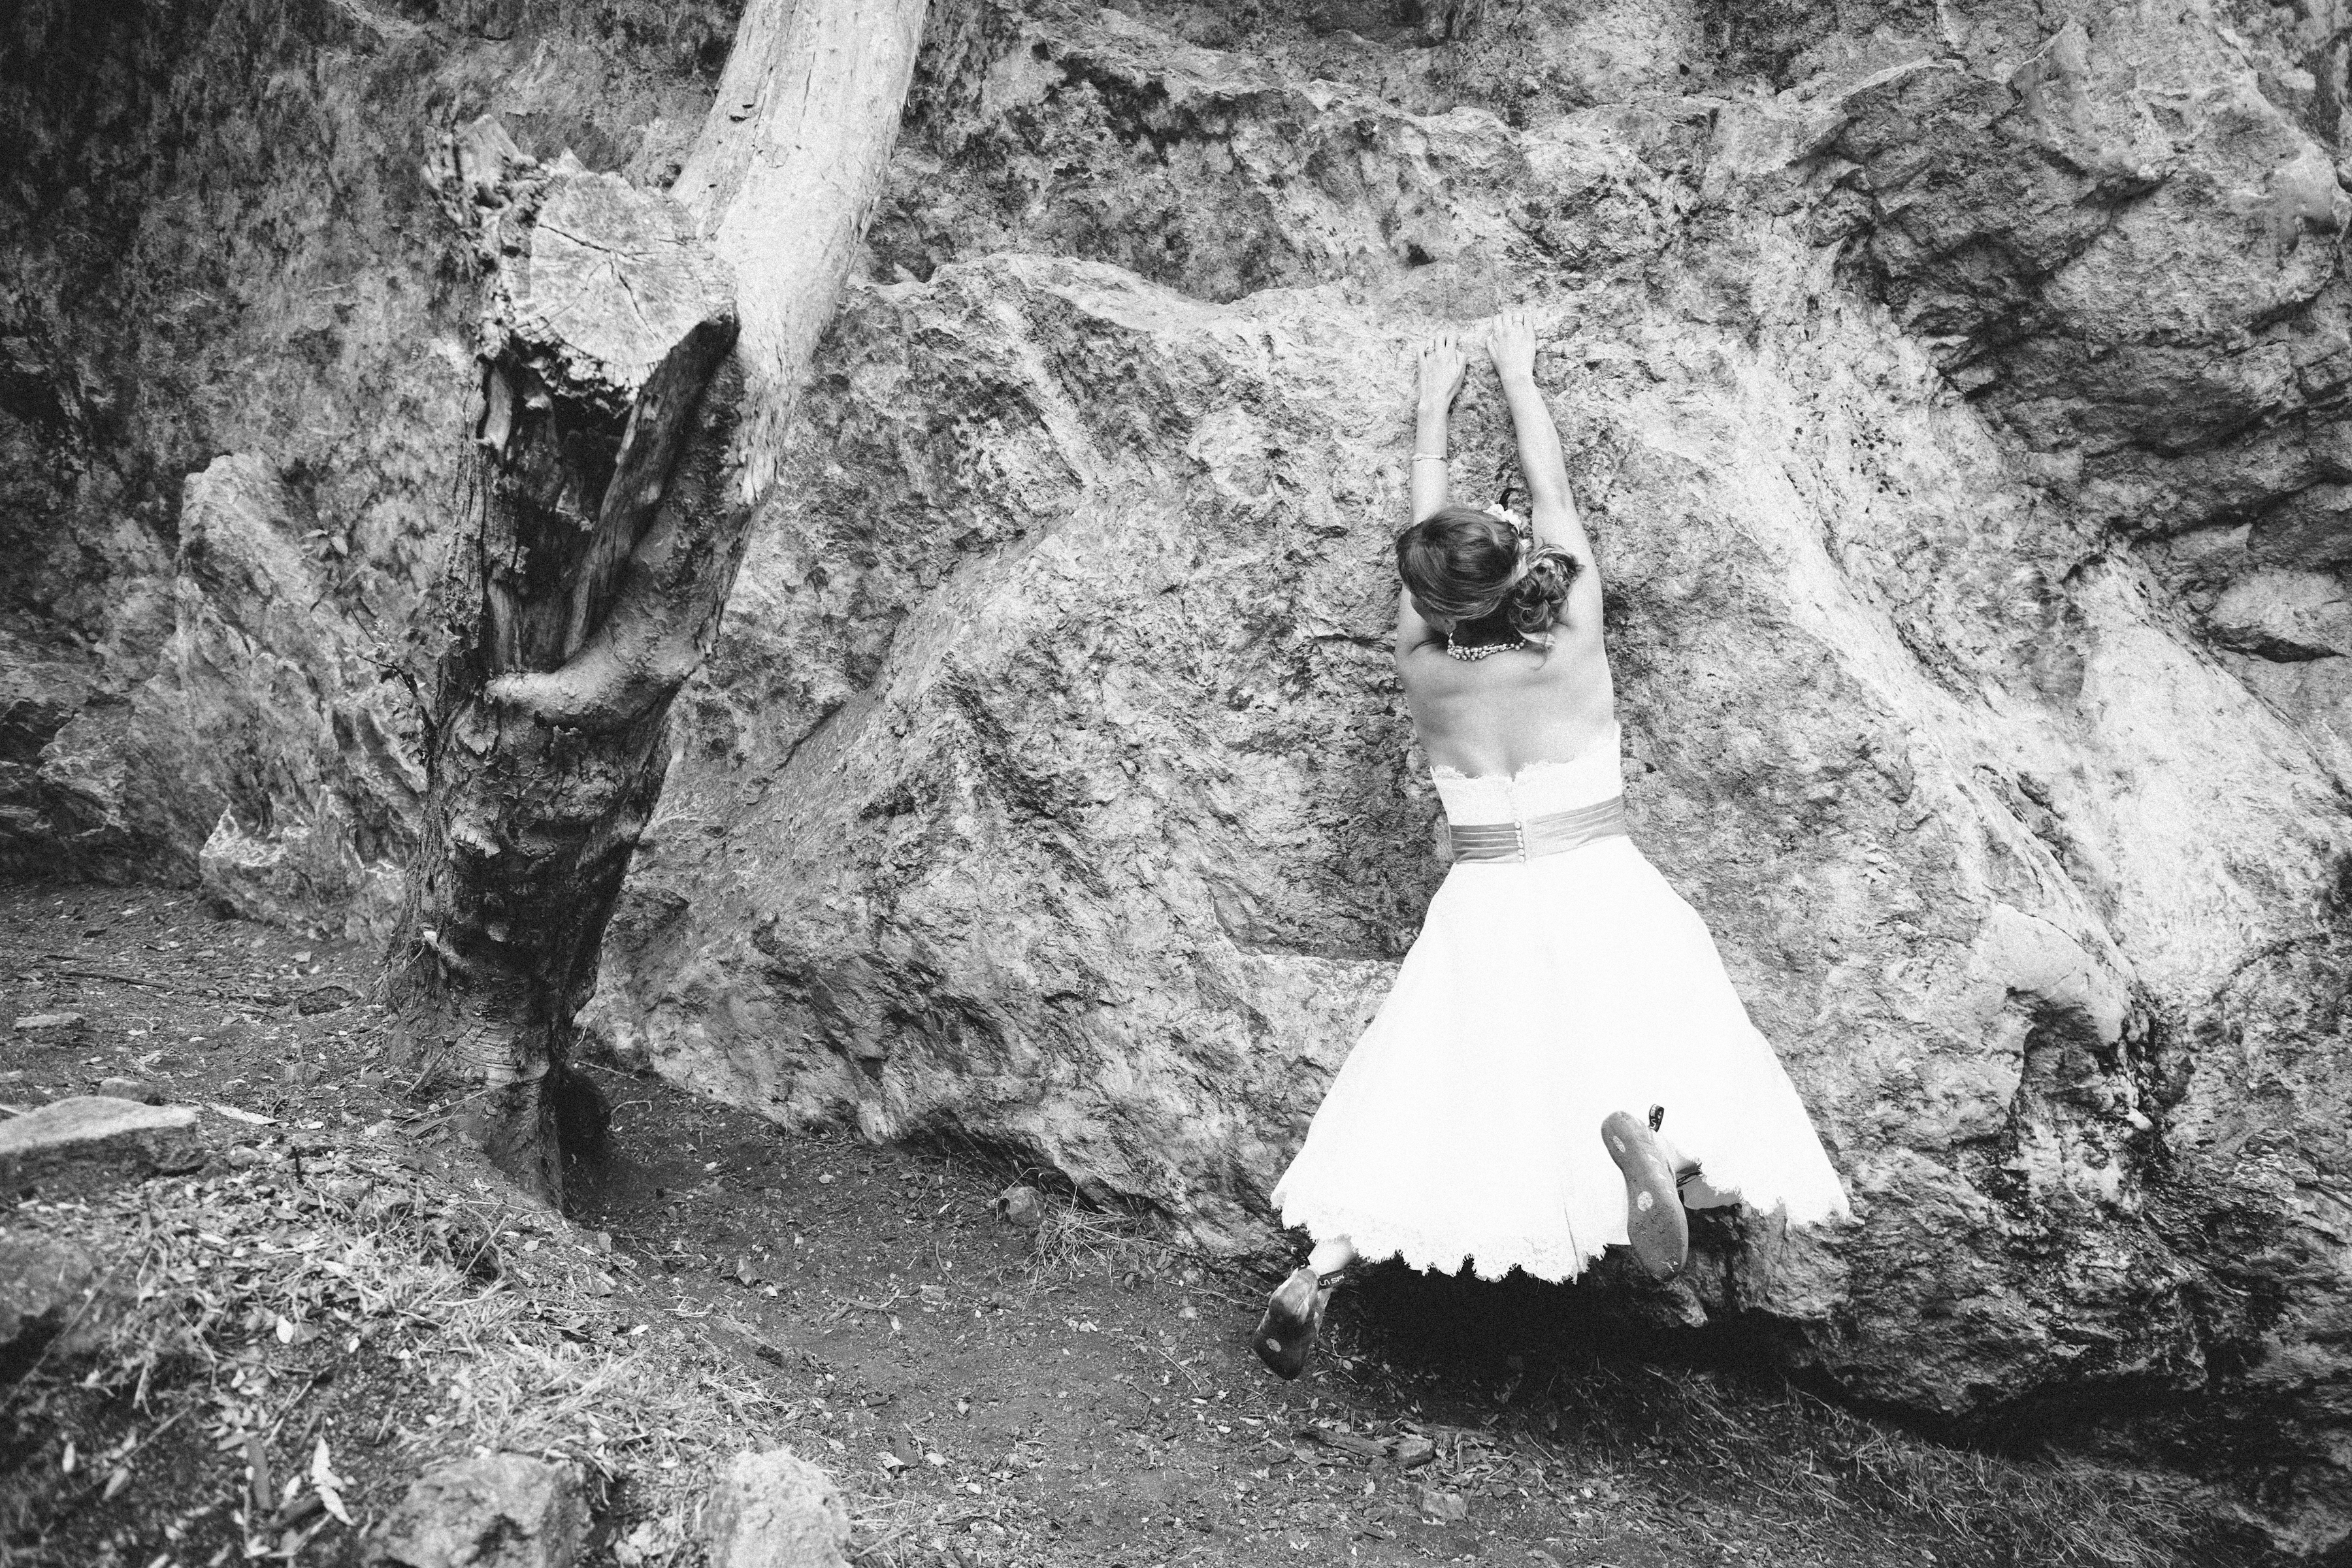 trash the dress rock climbing wedding adventure wedding adveture elopement